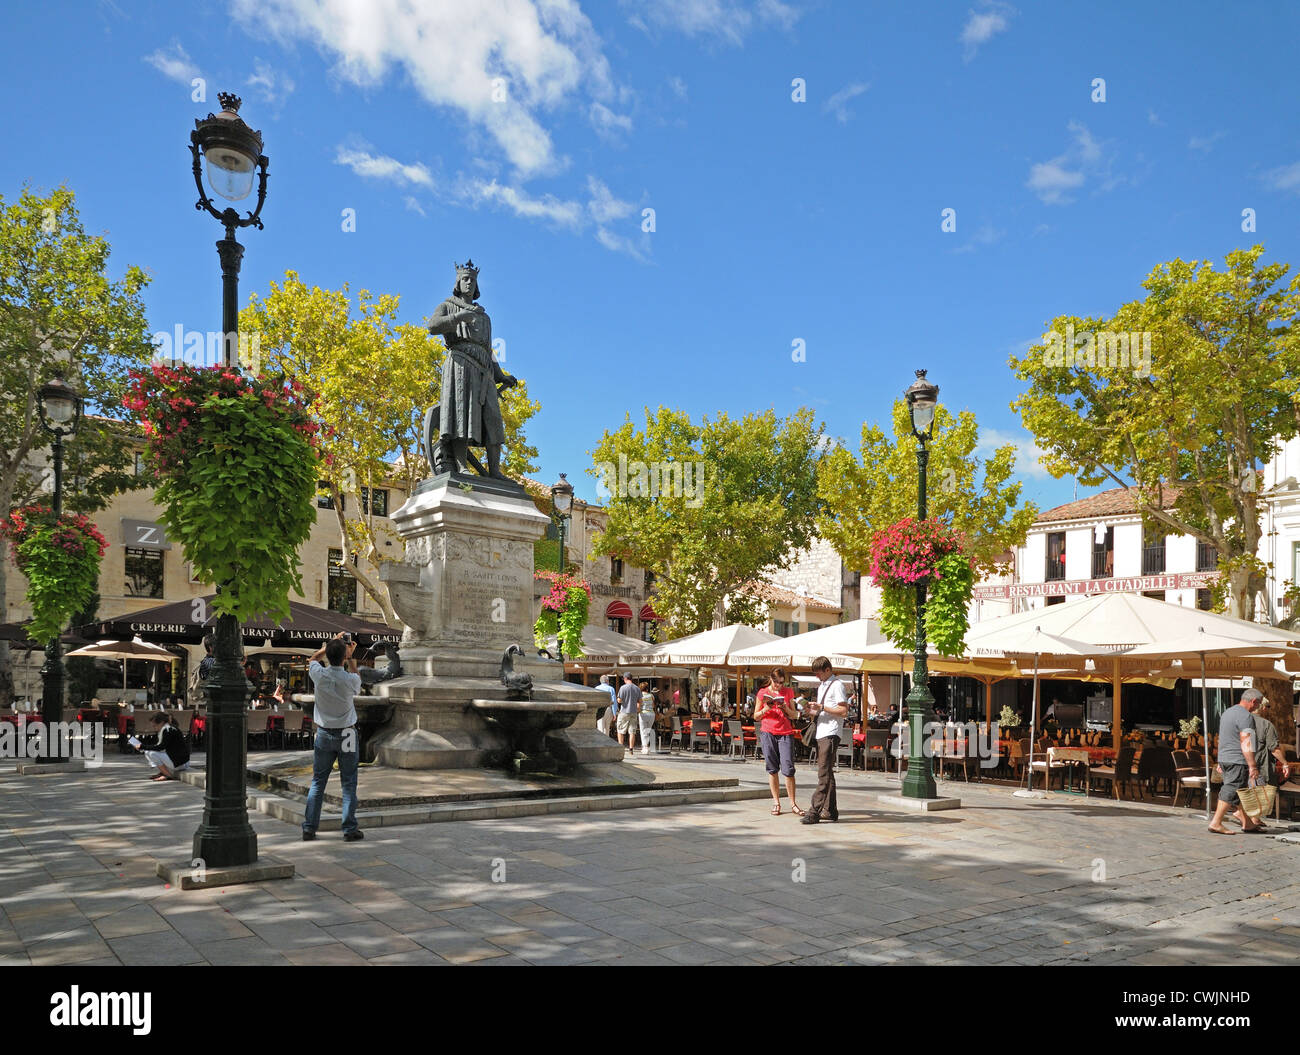 place saint louis in aigues mortes france with market stalls ornate